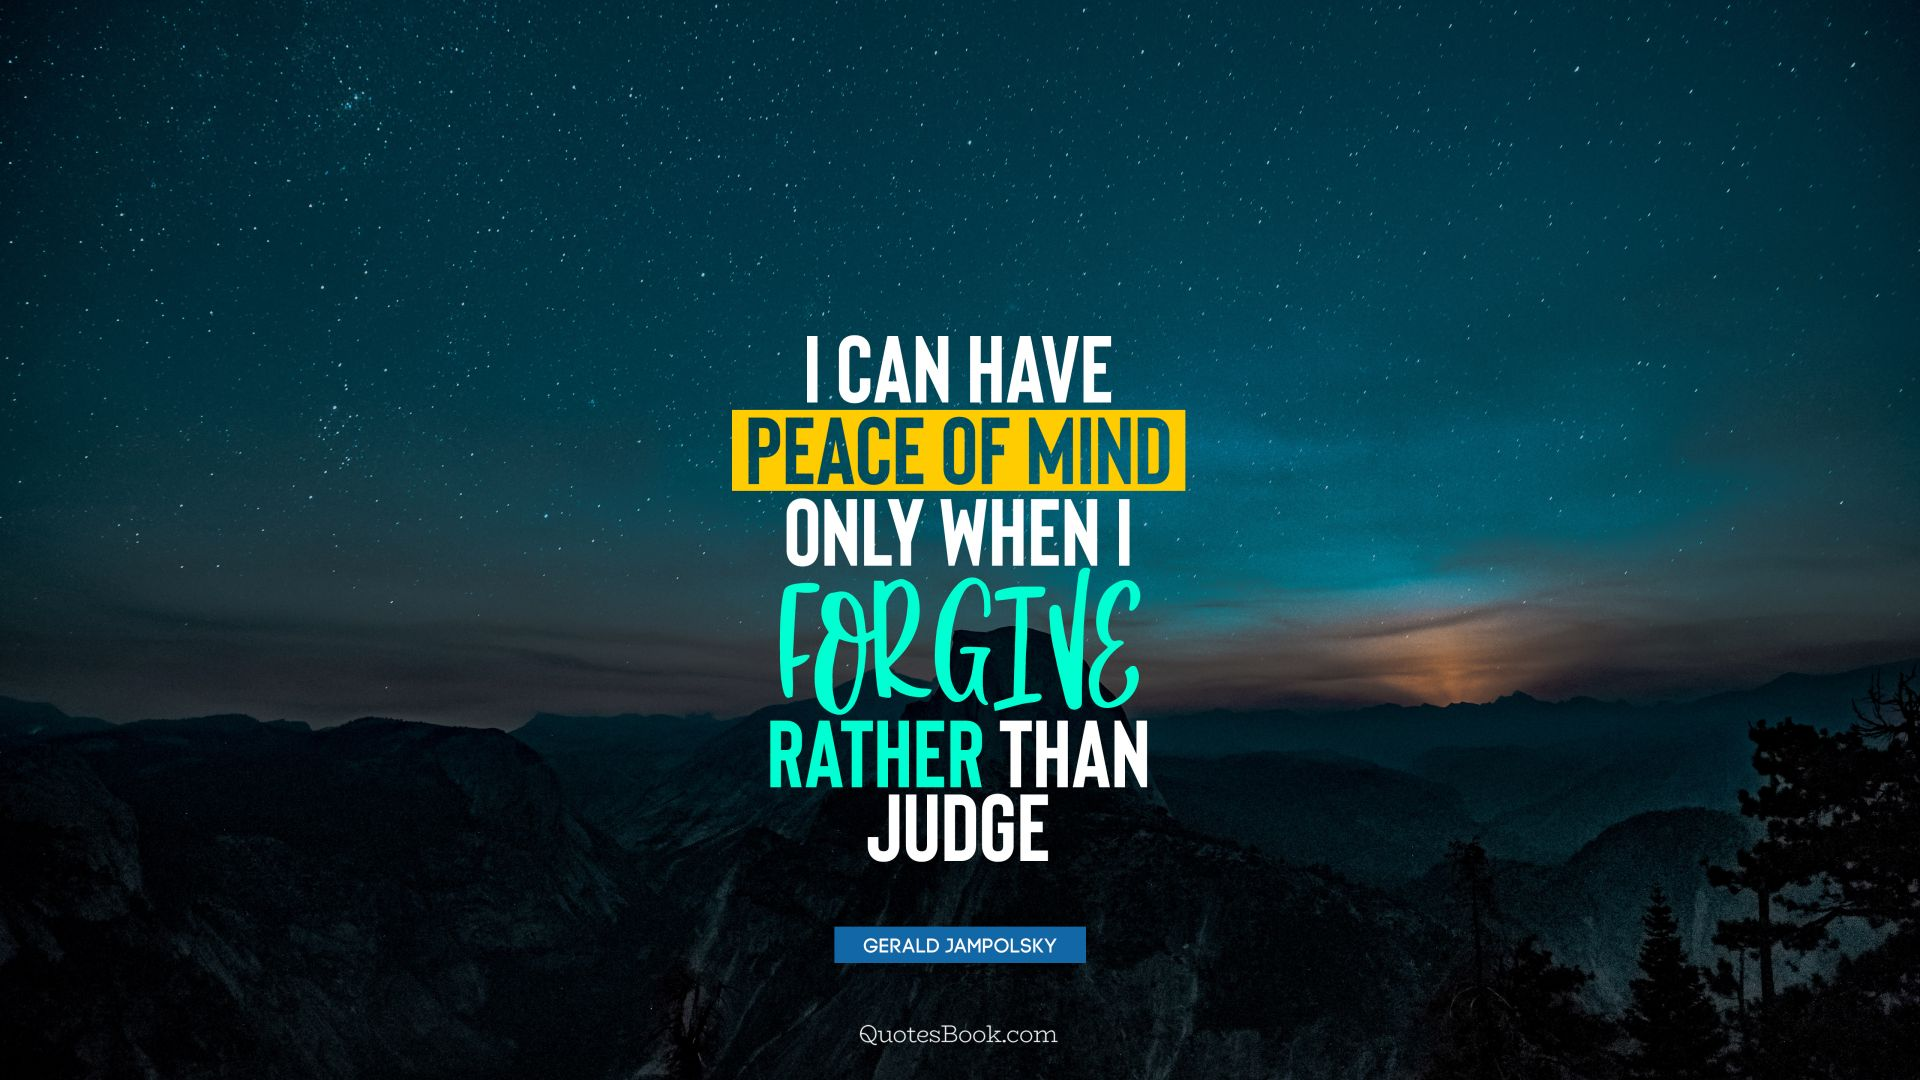 I can have peace of mind only when I forgive rather than judge. - Quote by Gerald Jampolsky